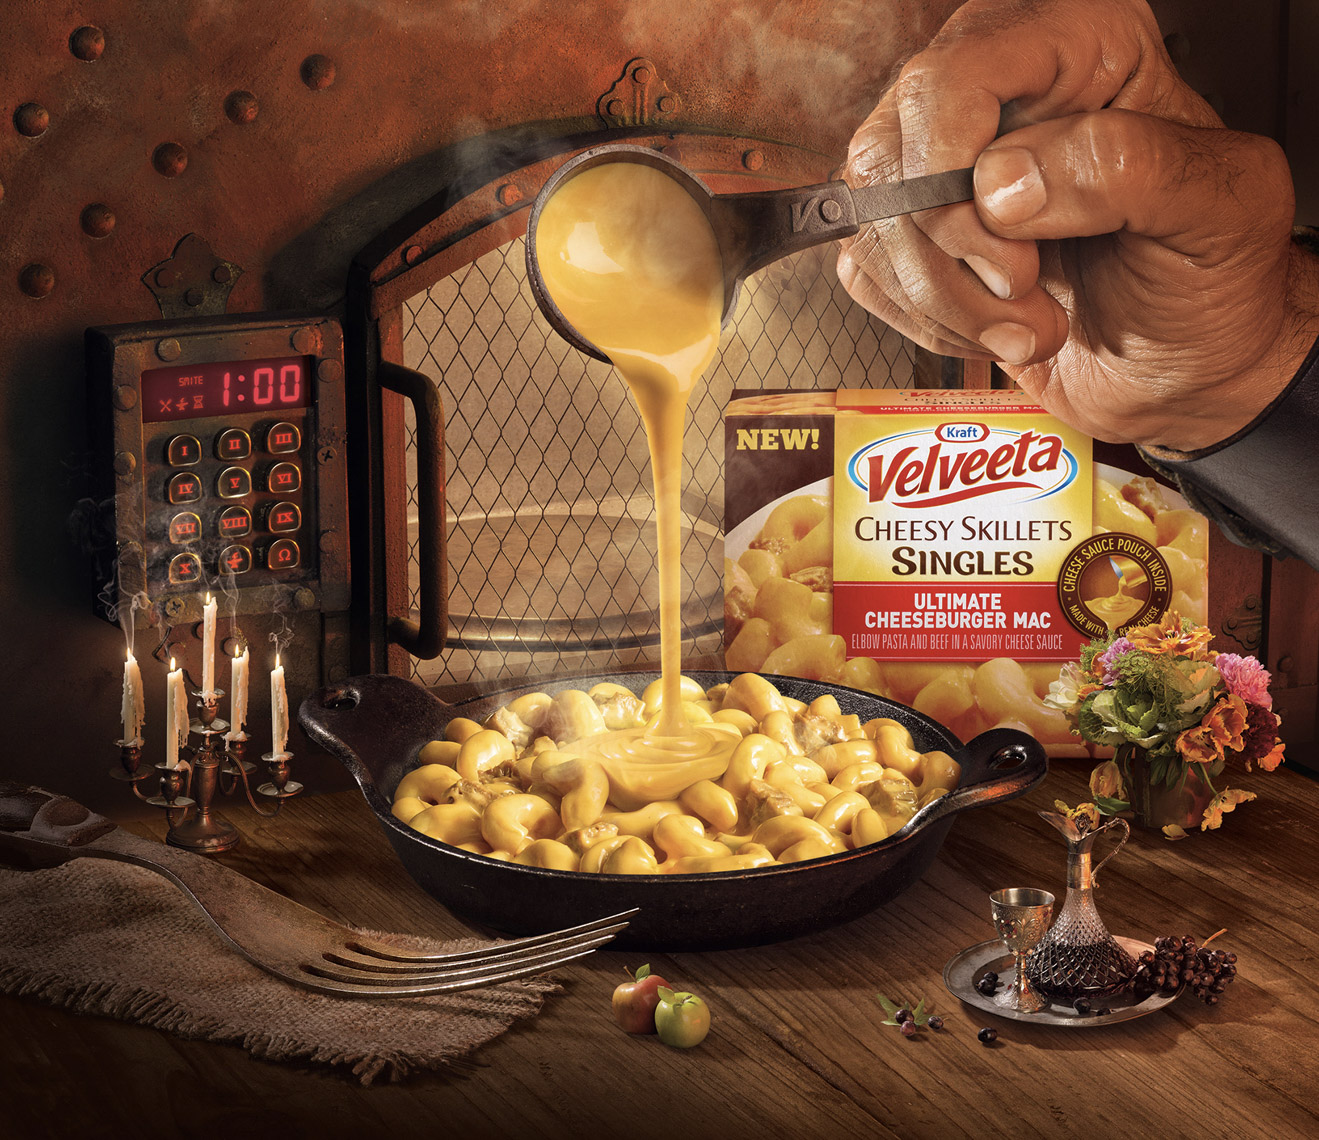 food stylist in San Fancisco - Cheesy skillet Kraft Velveeta macaroni and cheese advertising photographed by Maren Caruso photographer